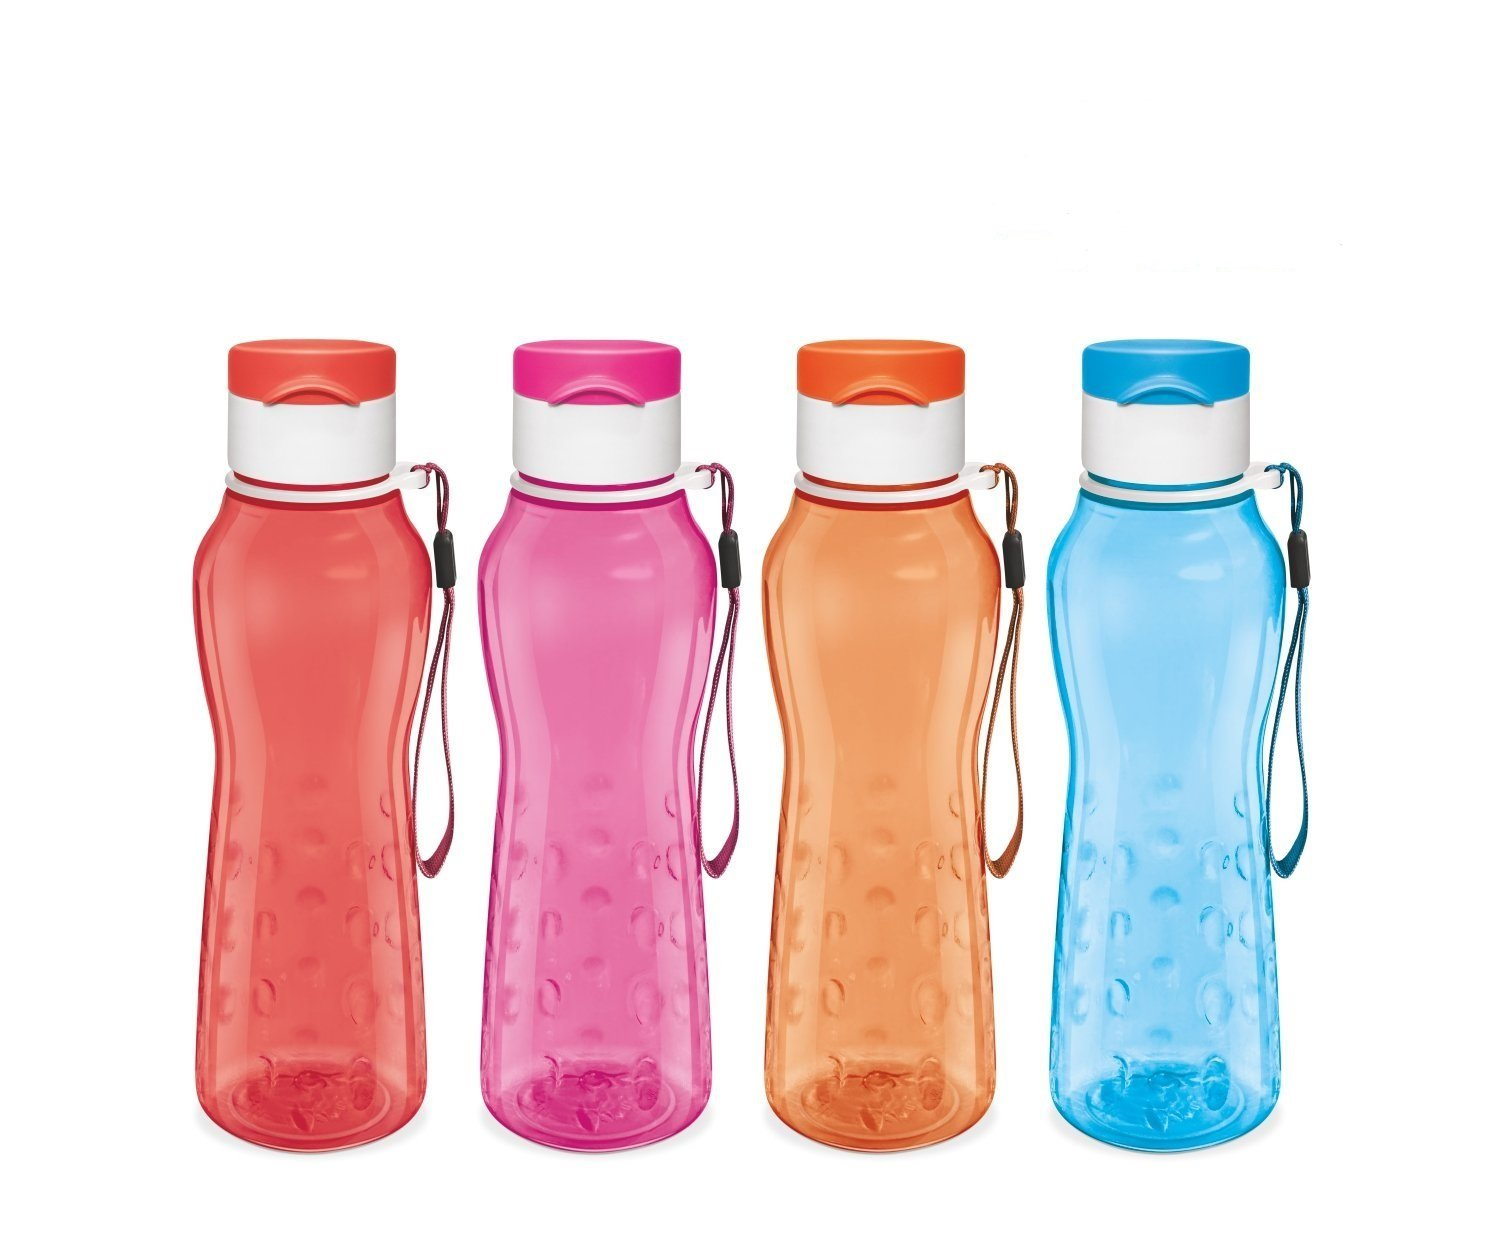 Sports Water Bottle - Milton Kids Reusable Leakproof 25 Oz 4-pack Plastic Wide Mouth Large Big Drink Bottle BPA & Leak Free With Handle Strap Carrier For Cycling Camping Hiking Gym Yoga Fitness